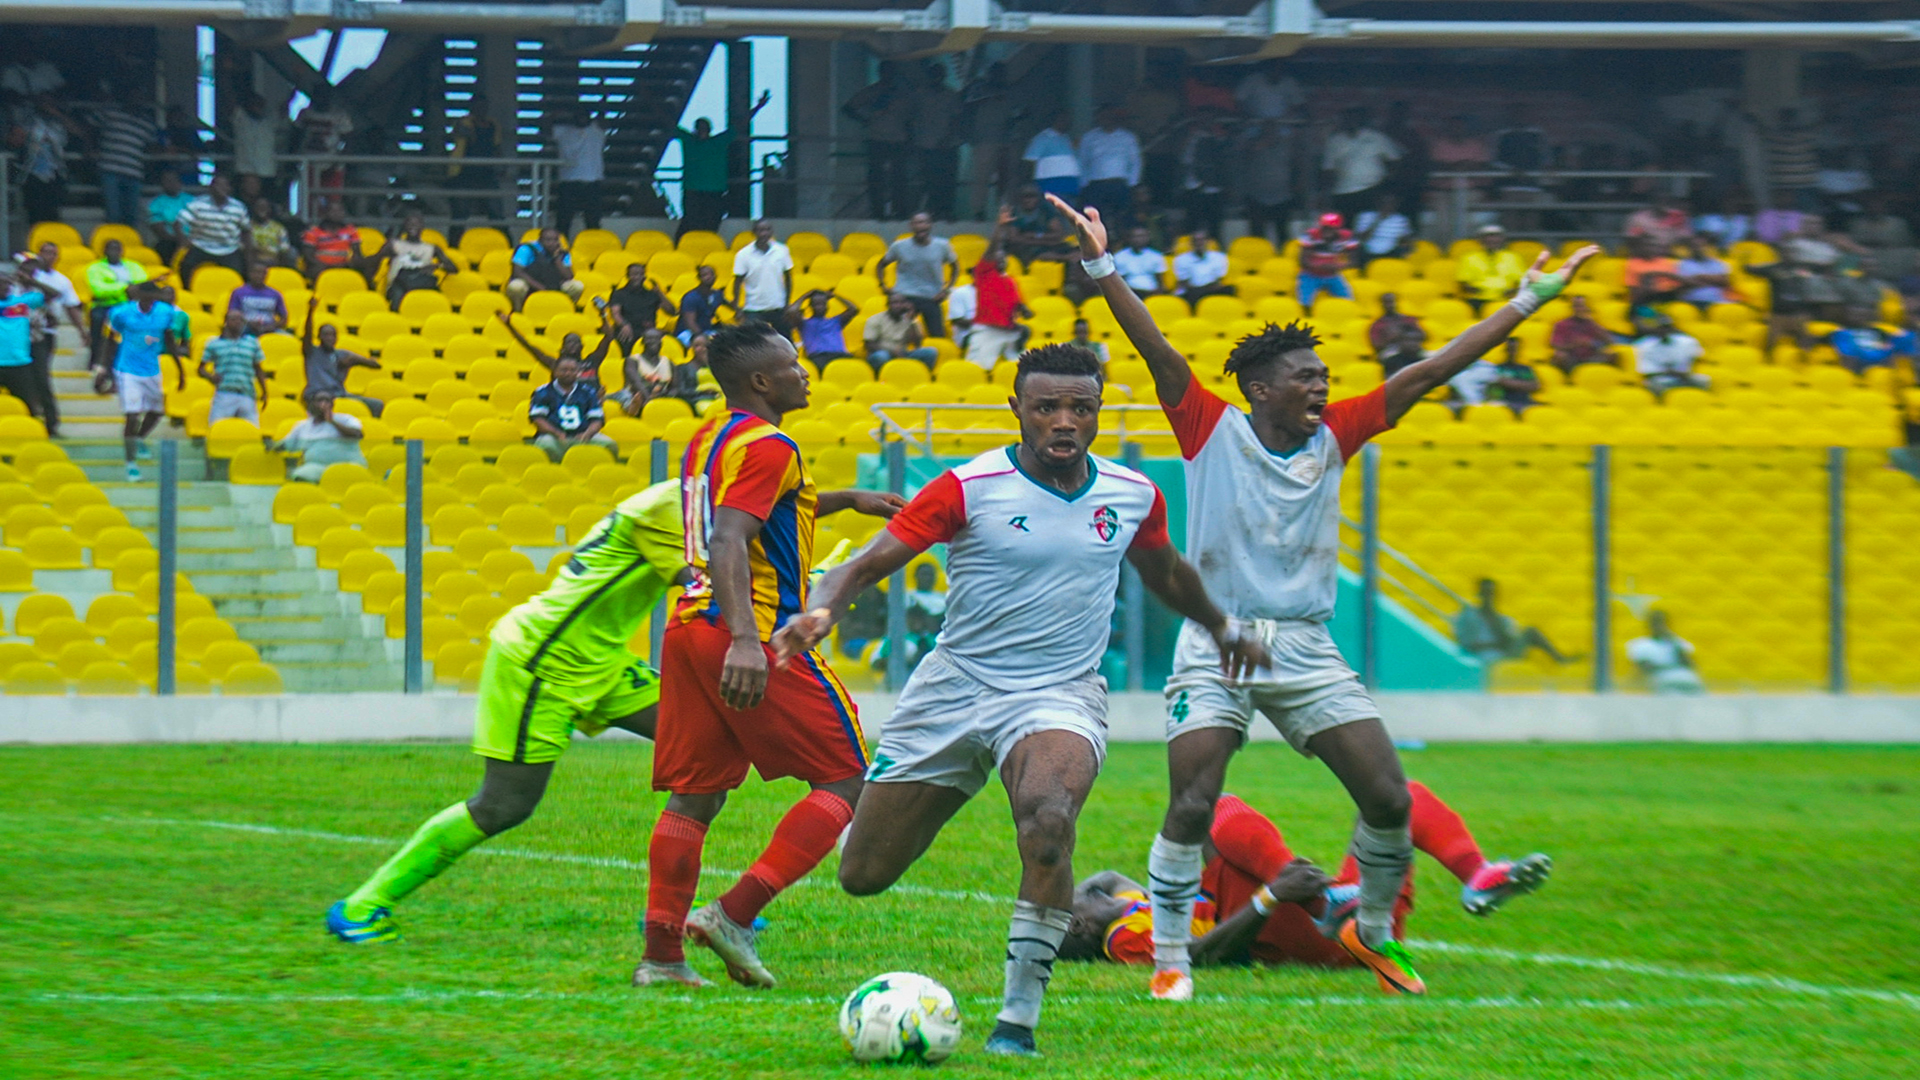 Coronavirus strikes: Ghana Premier League opener between Hearts of Oak and Aduana Stars postponed